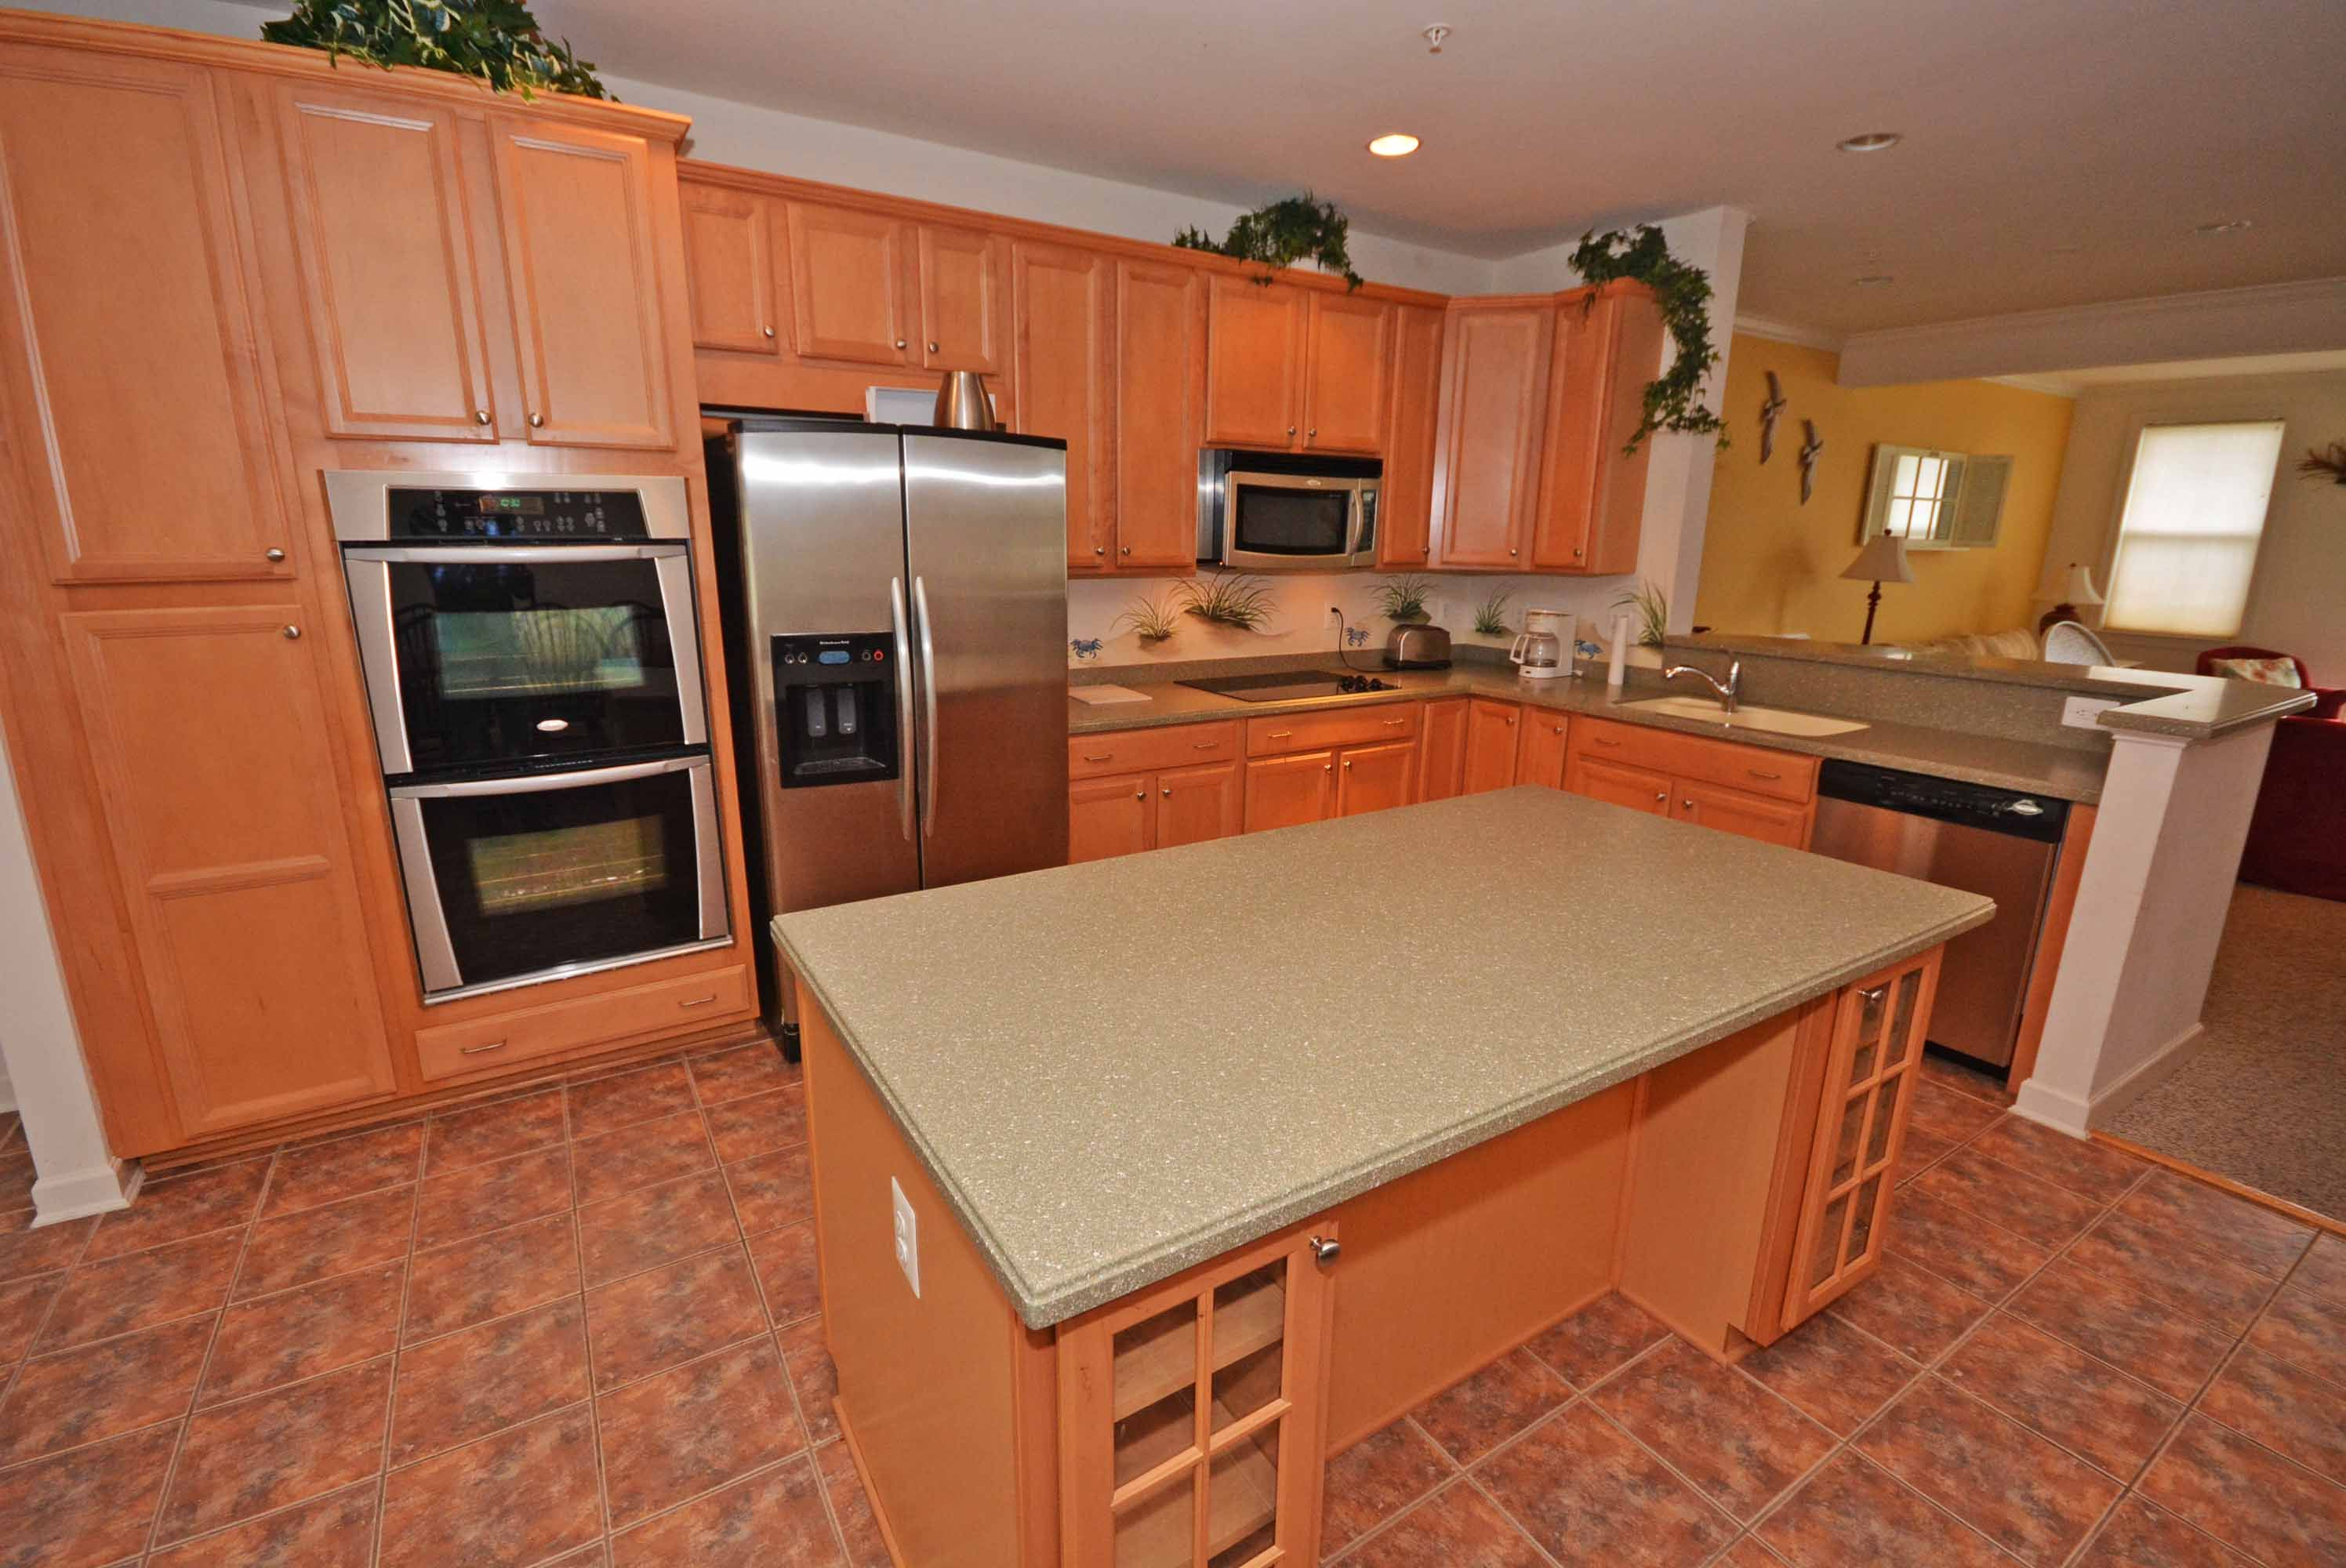 Sunset Island Town House #7 in Ocean City, MD